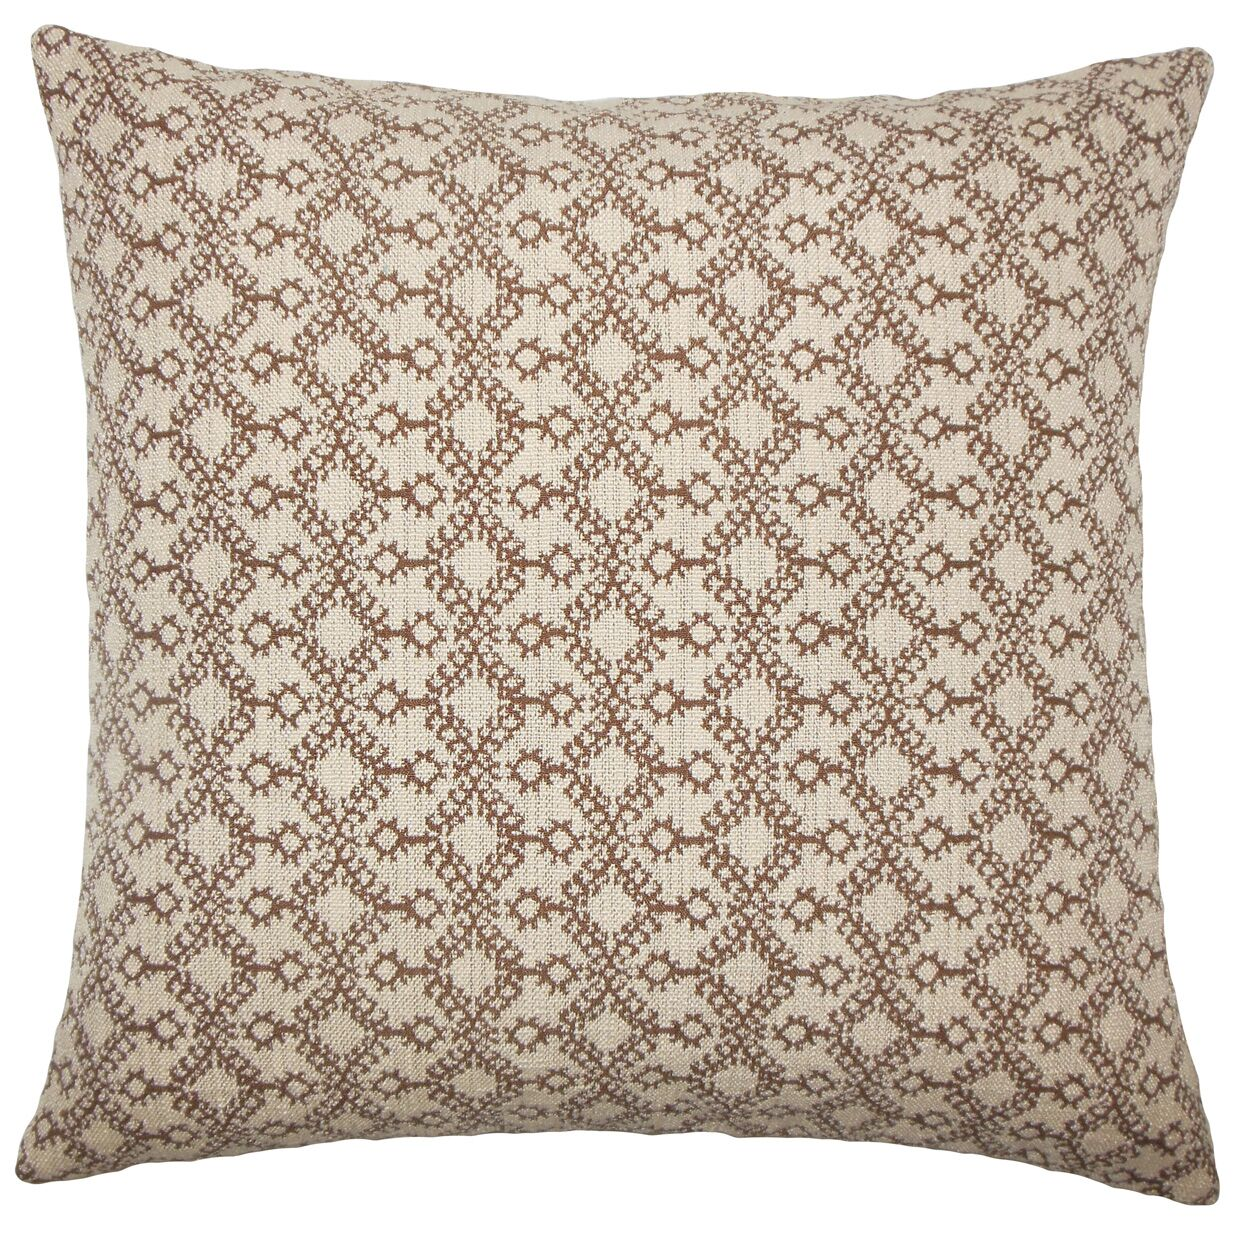 Gzifa Ikat Bedding Sham Size: Euro, Color: Brown